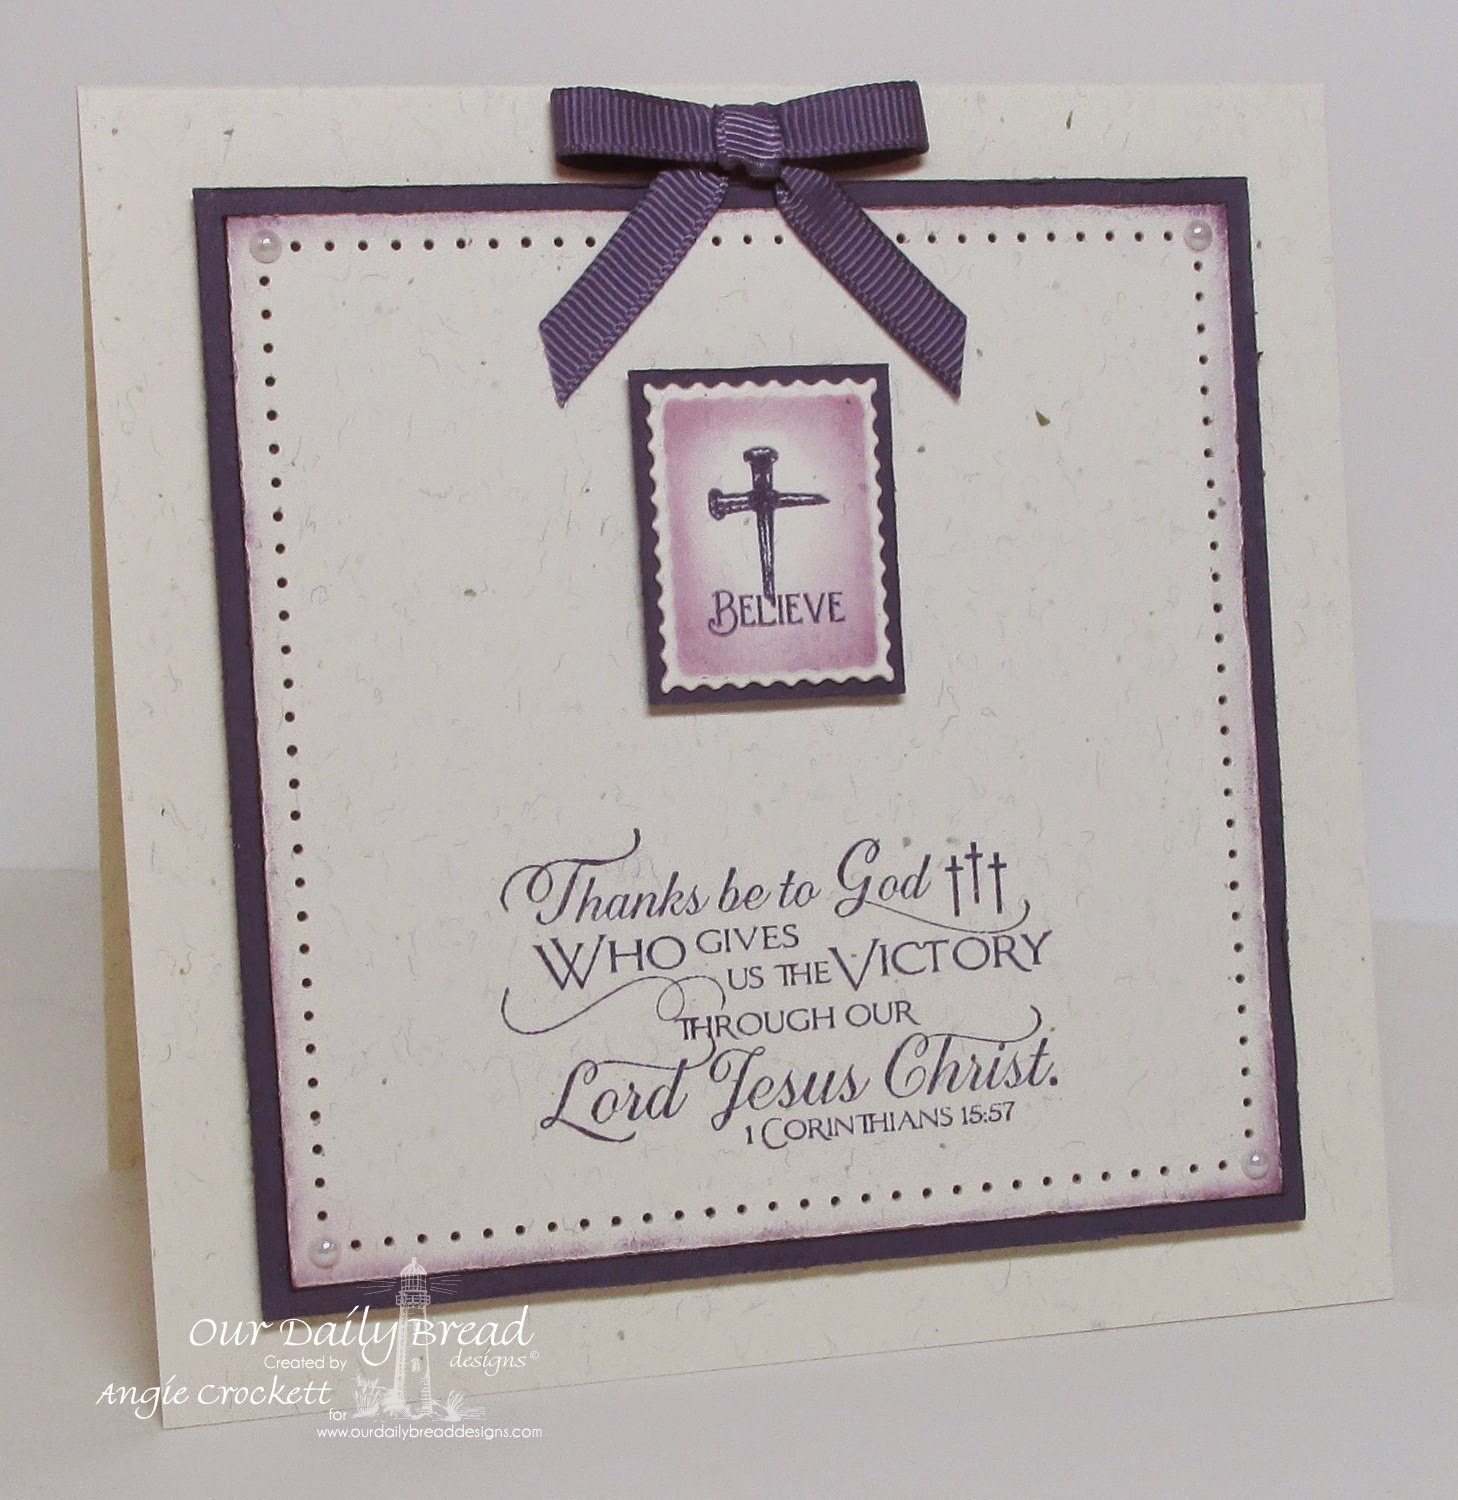 Our Daily Bread designs Admit One, ODBD Custom Mini Tags Dies, Scripture Collection 10, Card Designer Angie Crockett